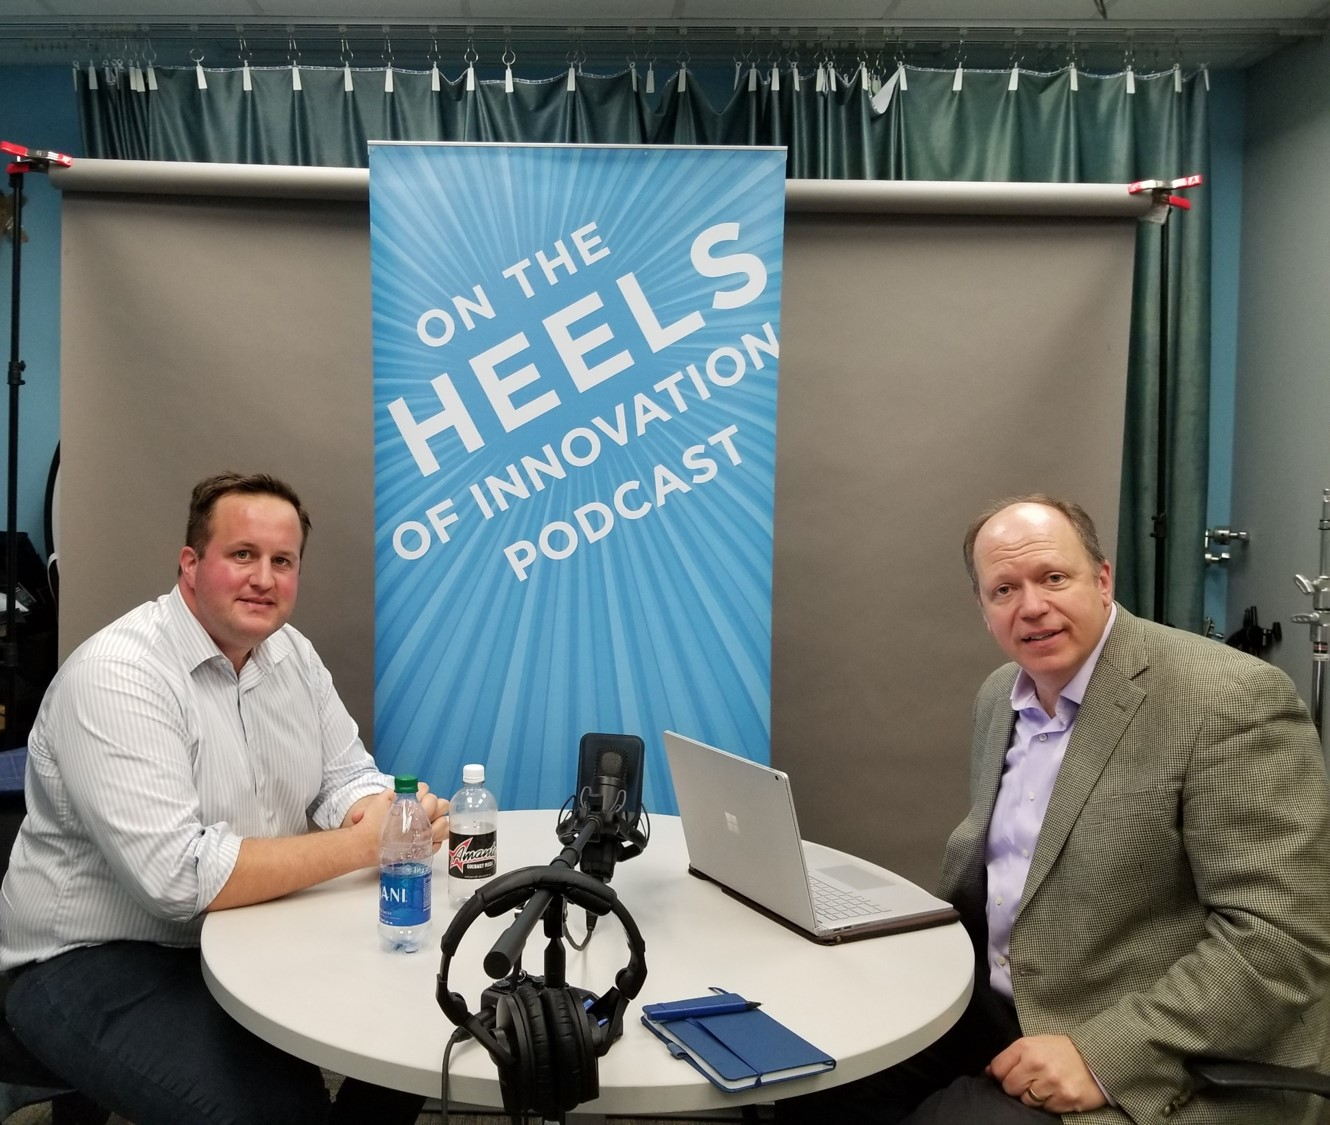 nick-black-podcast-on-heels-of-innovation